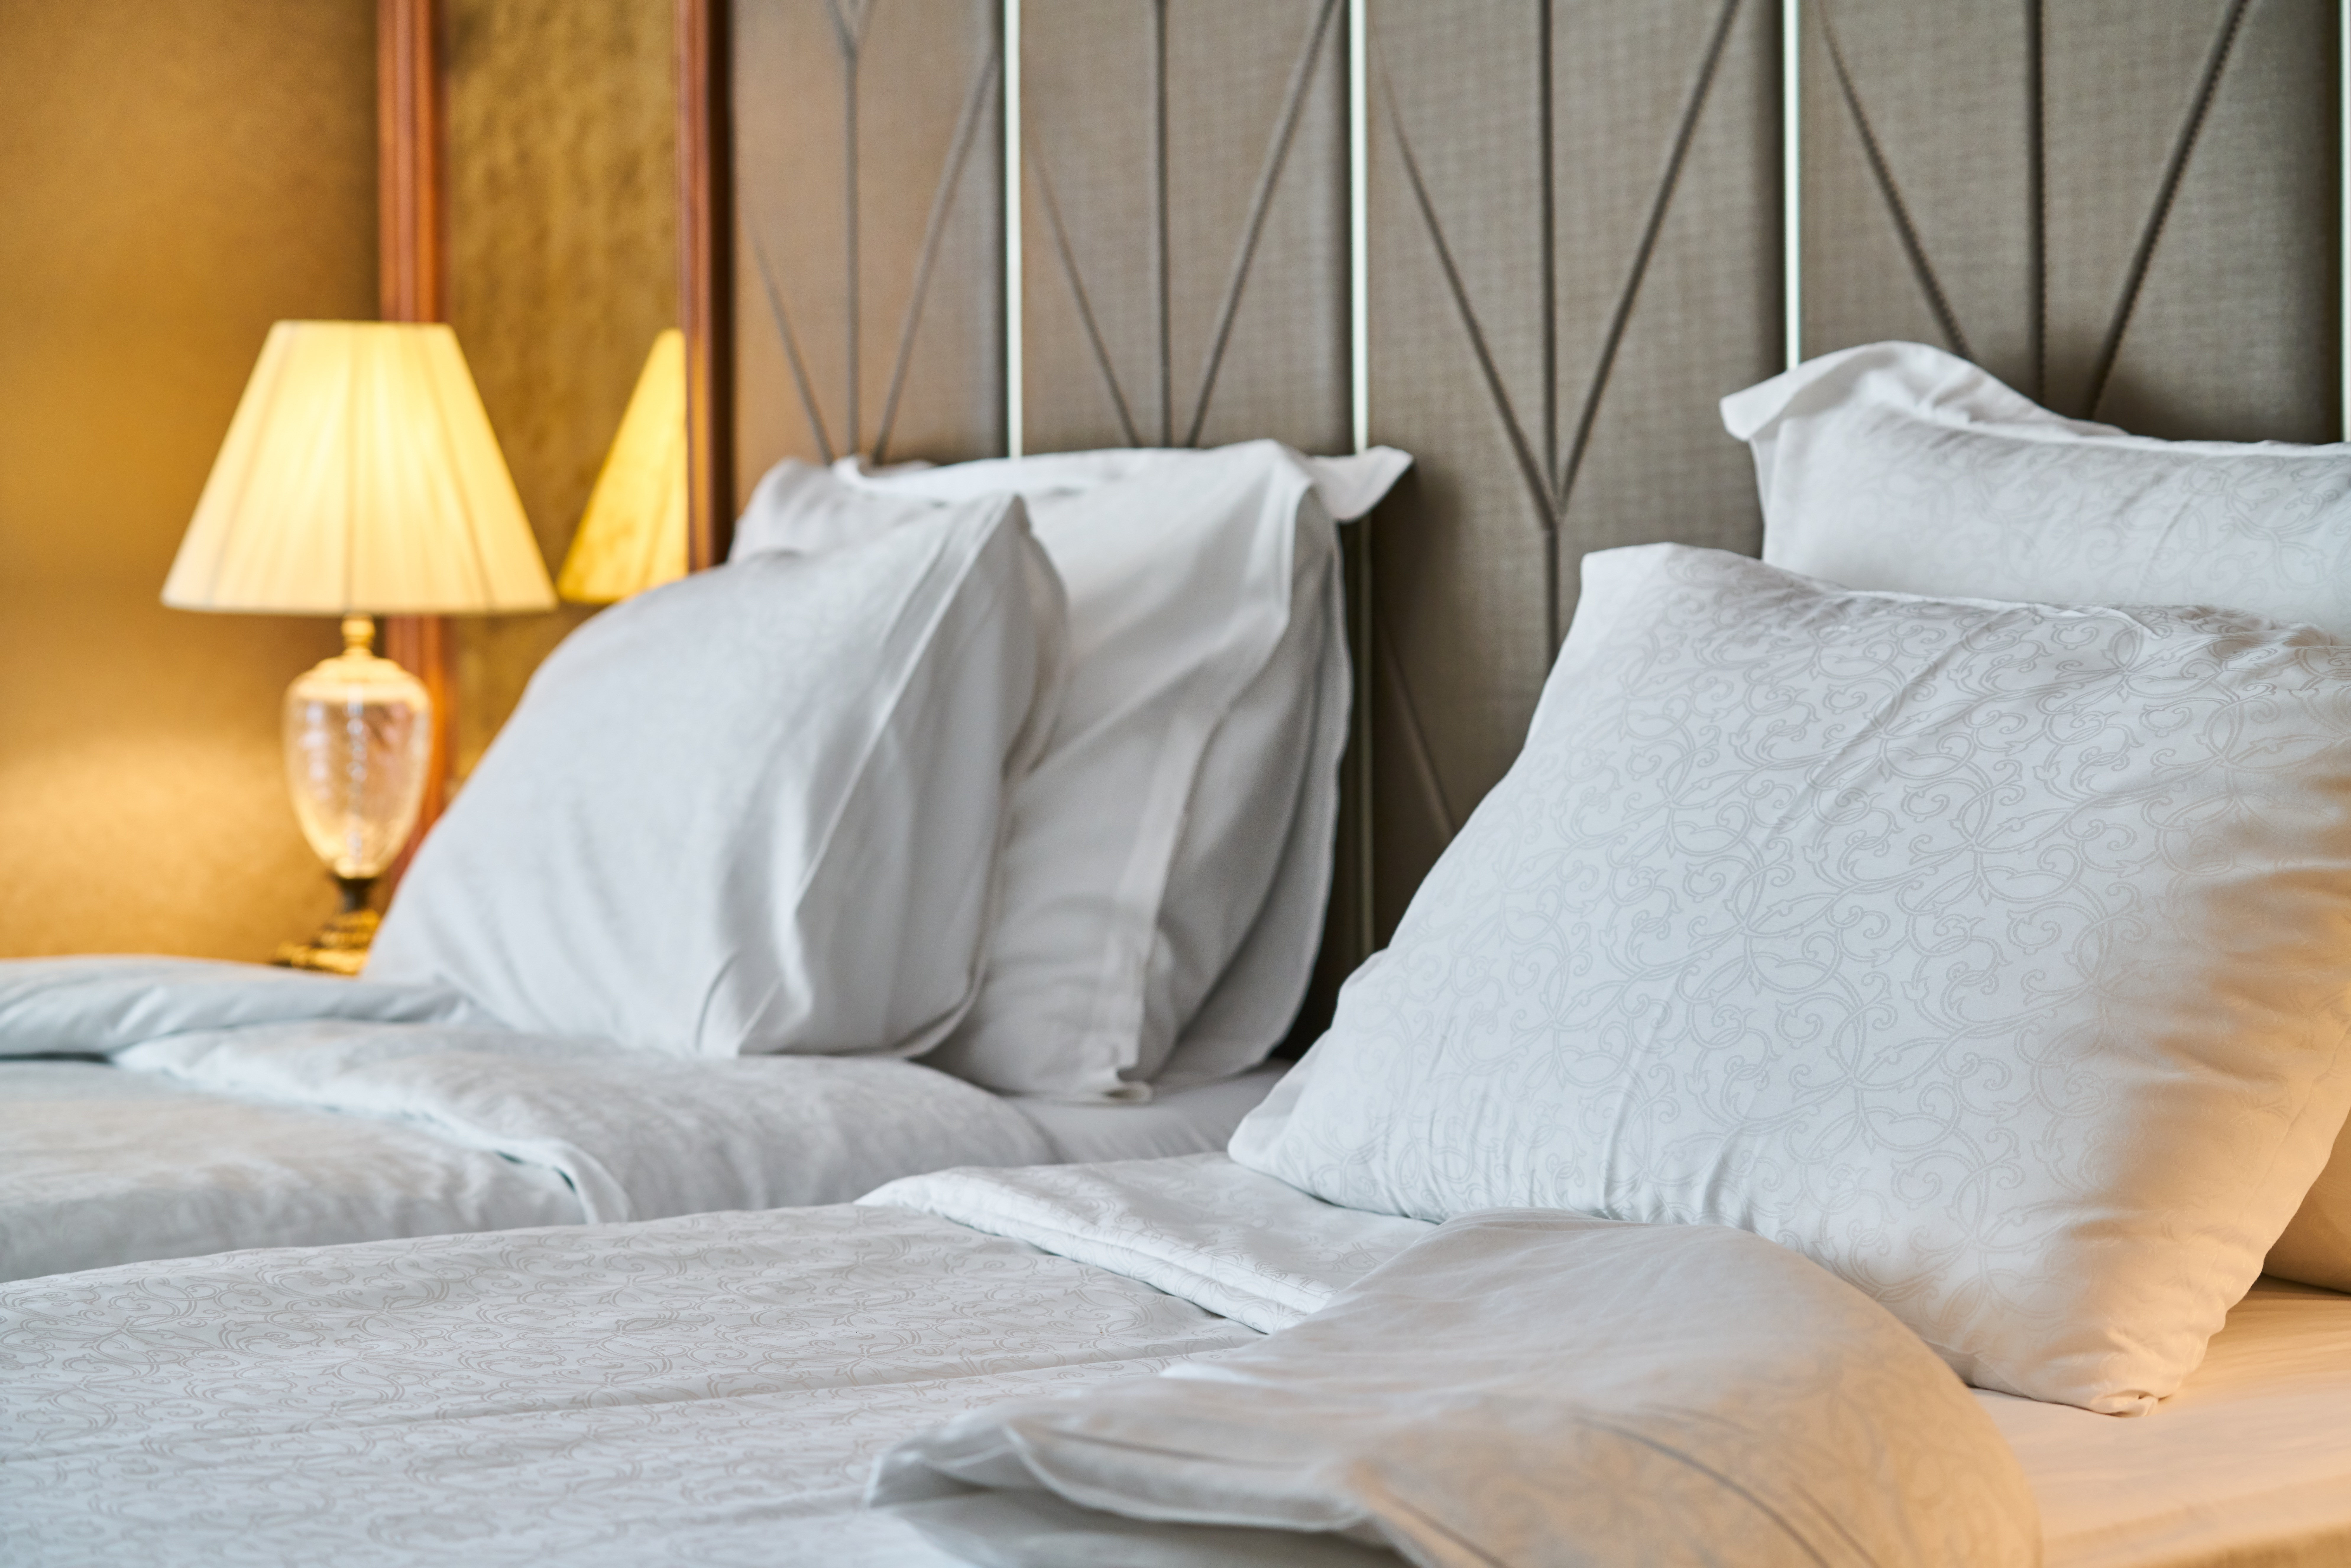 Bed furniture with lamp and pillows